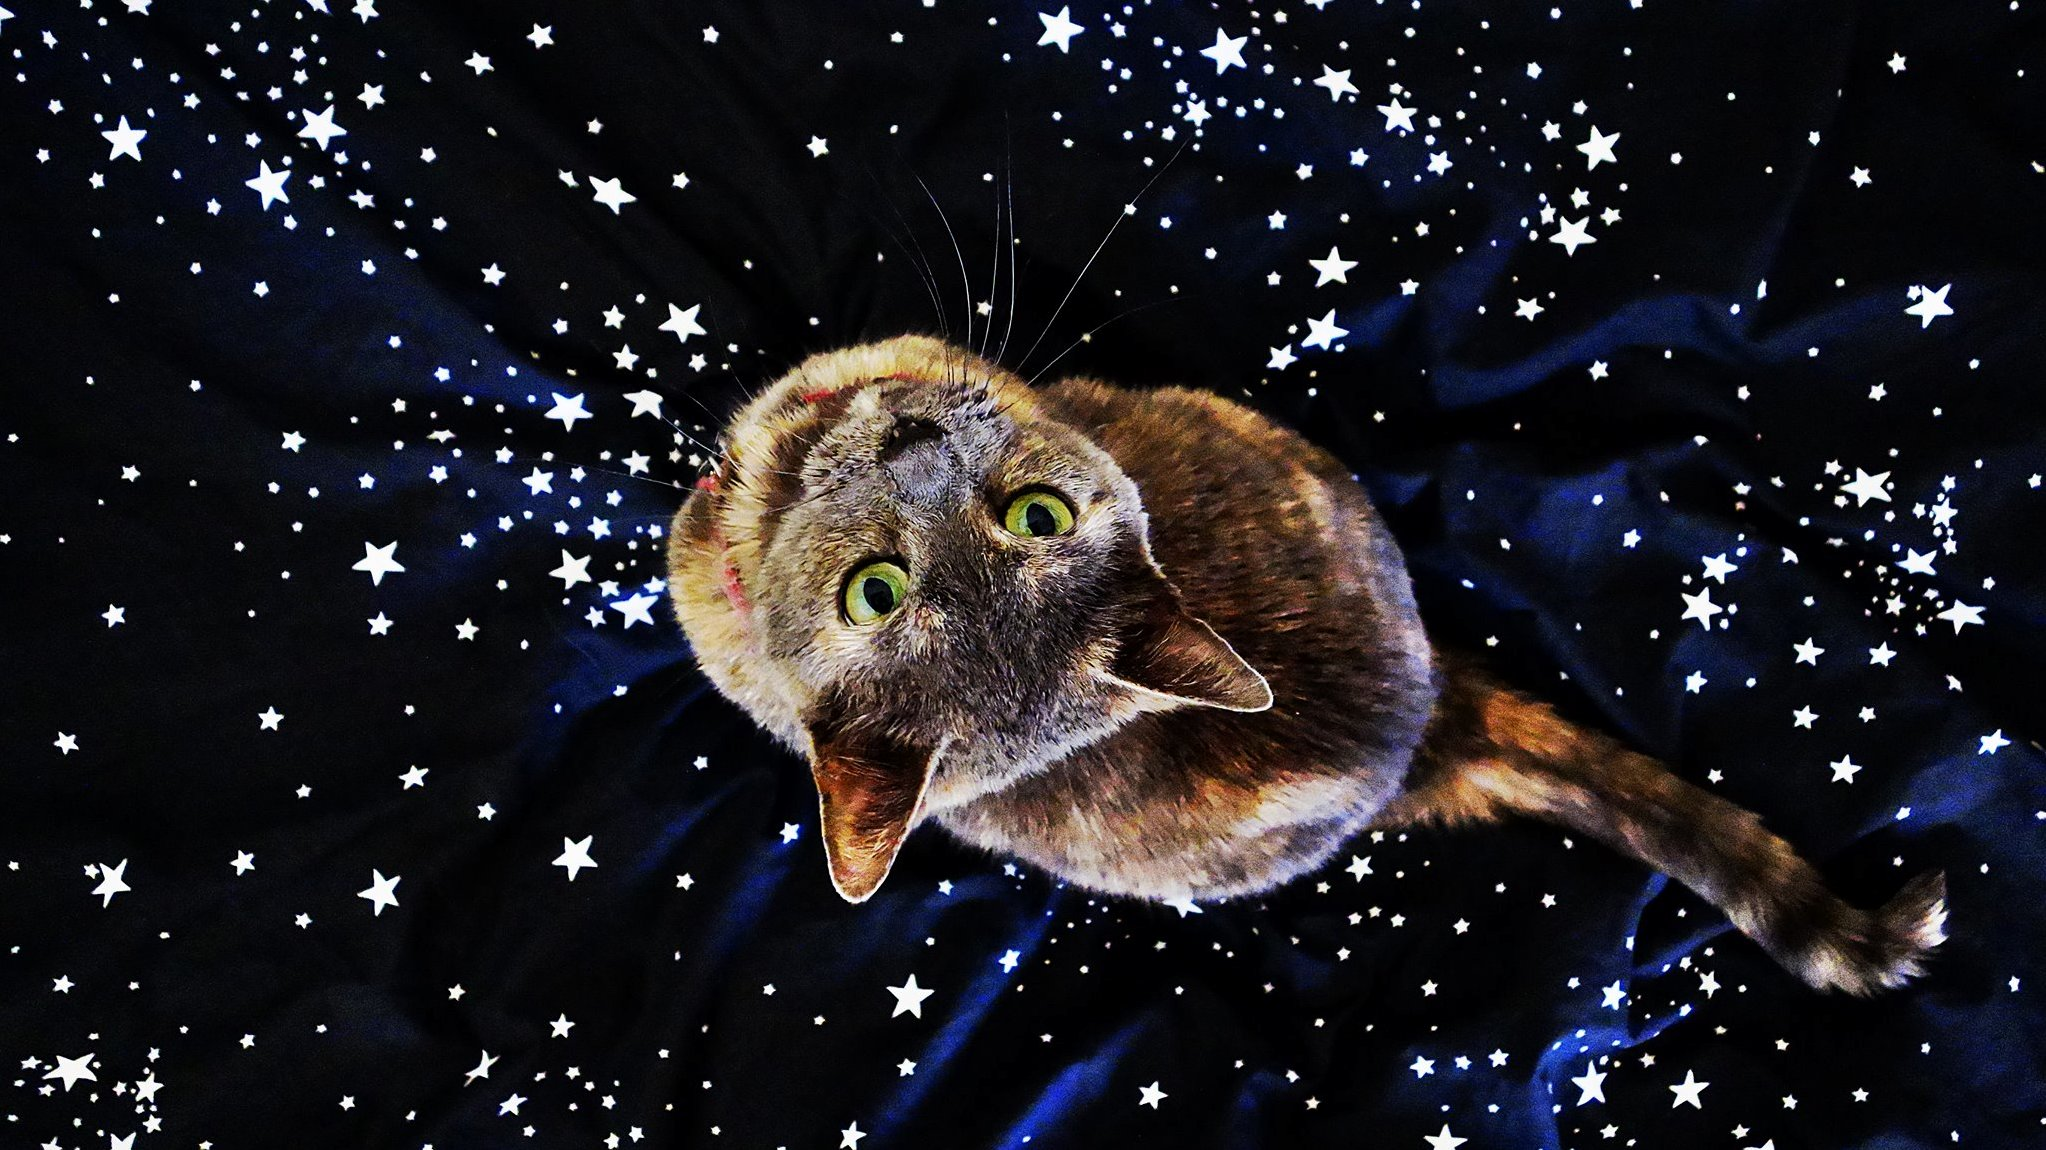 My cat in space